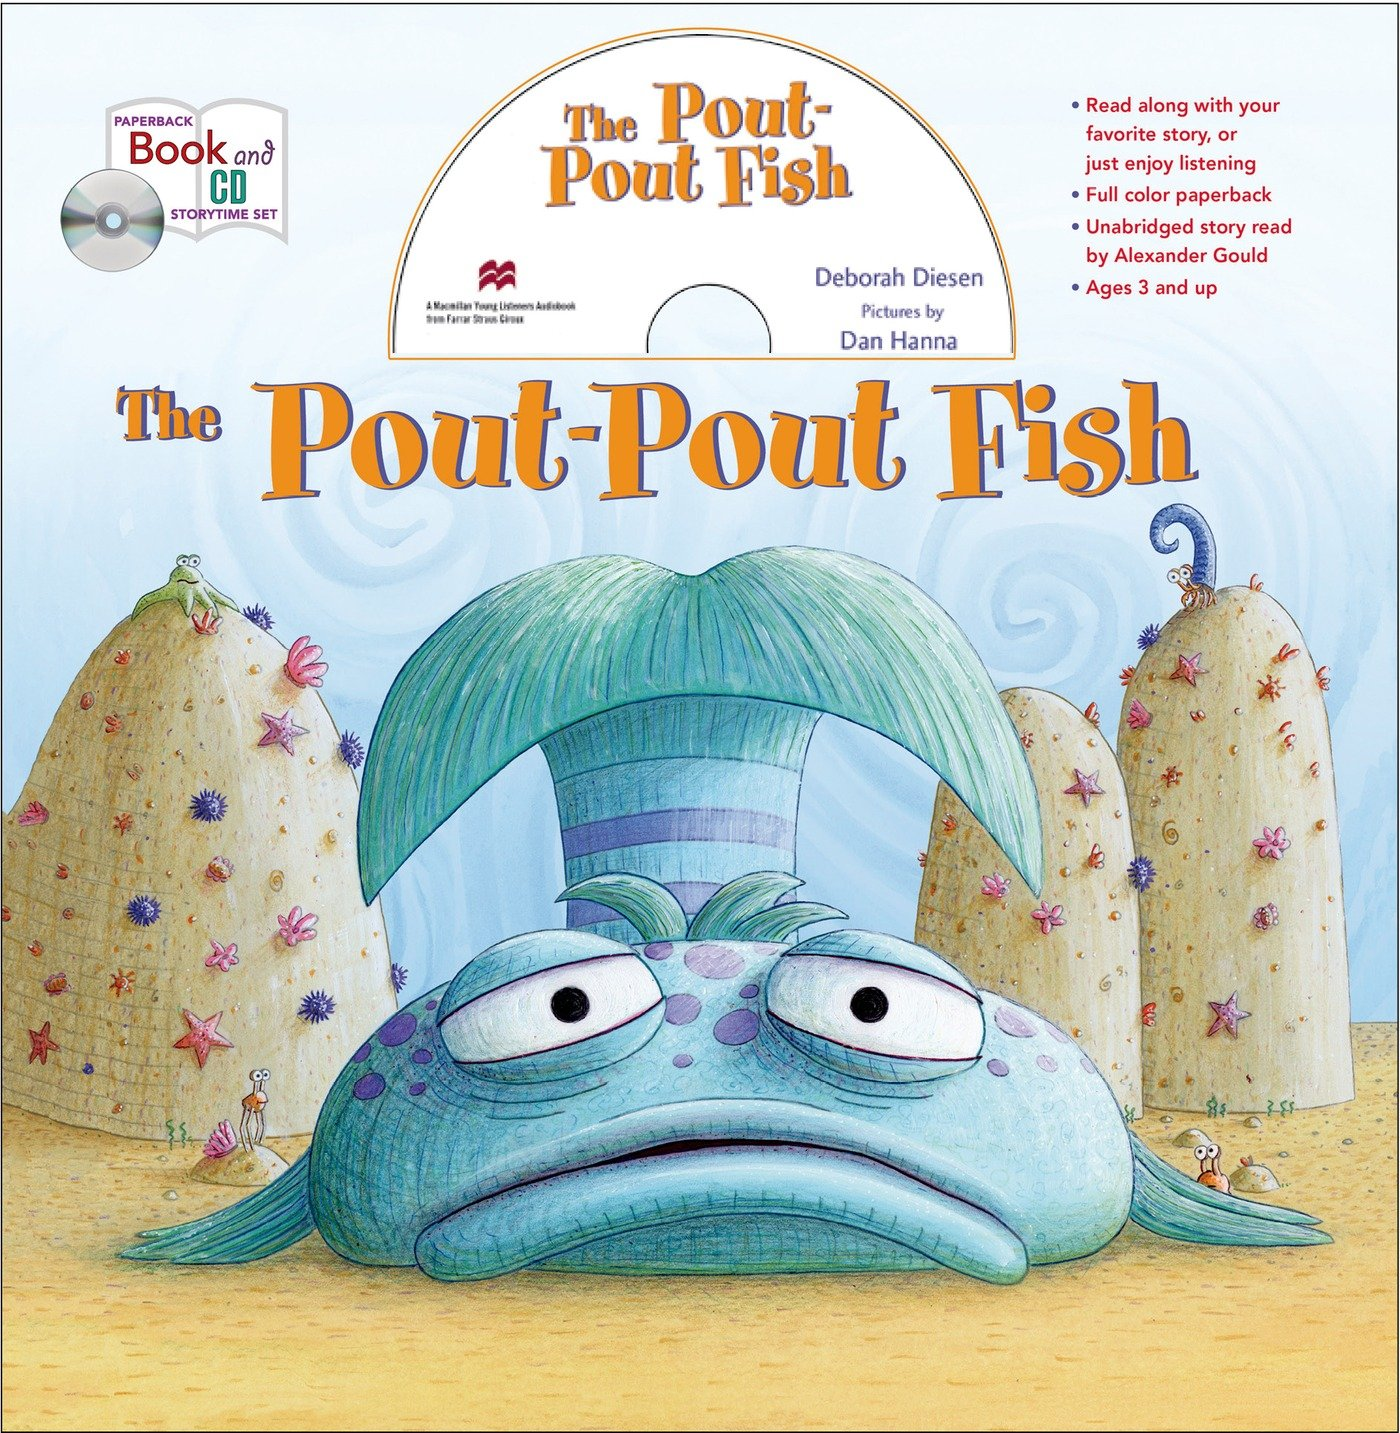 Download The Pout-Pout Fish book and CD storytime set ebook